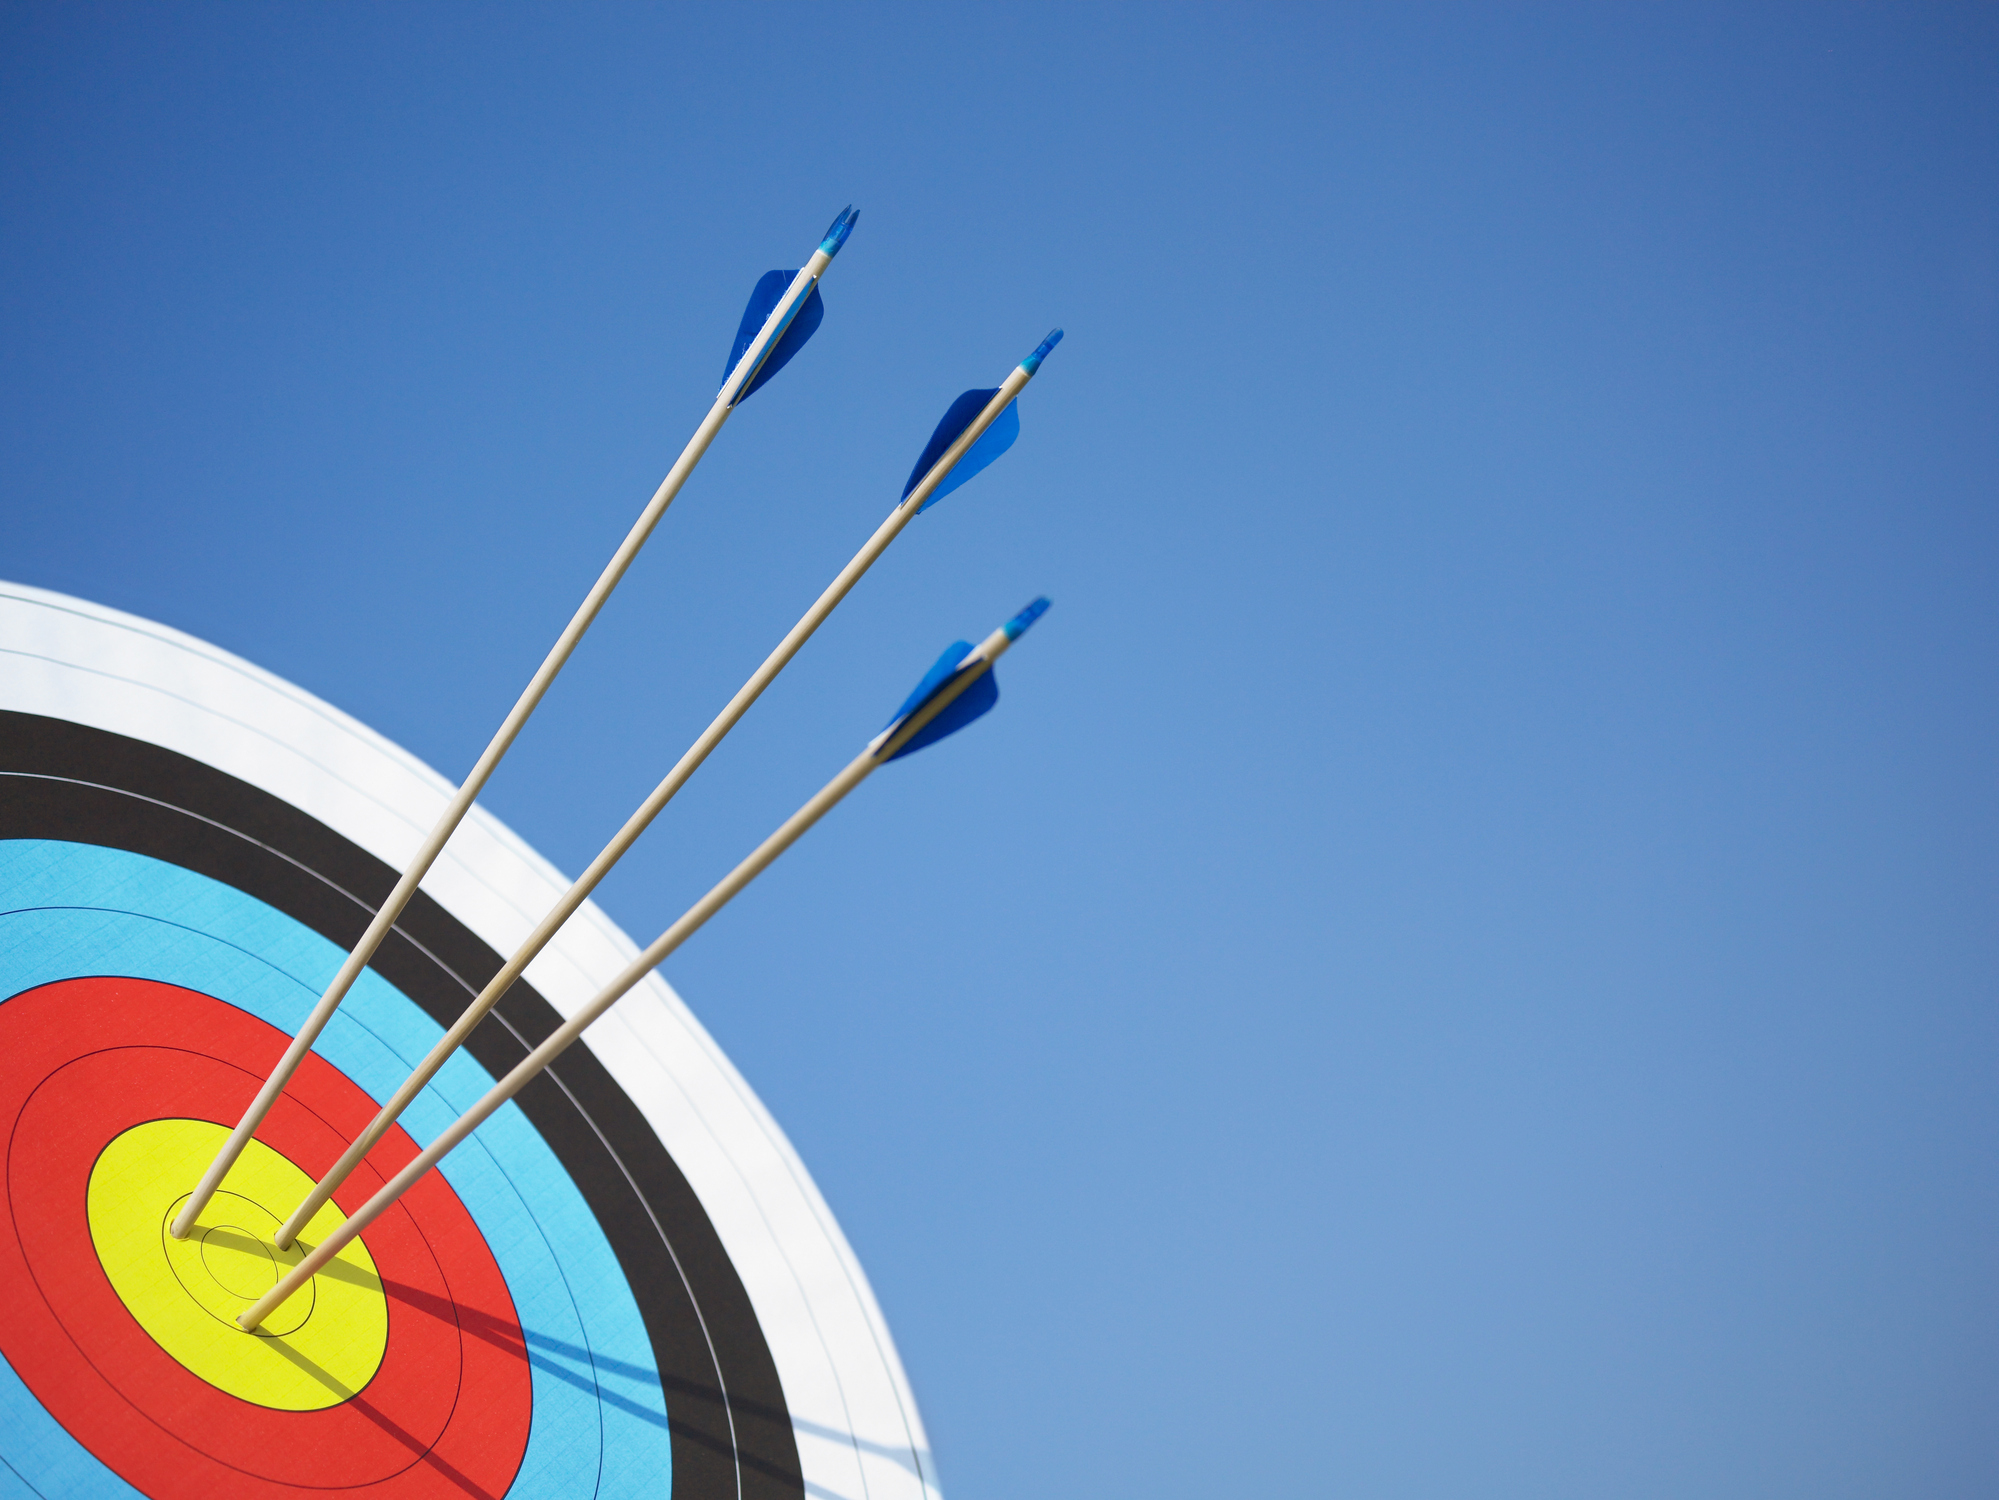 Archery: the perfect sport for summer, and the zombie apocalypse